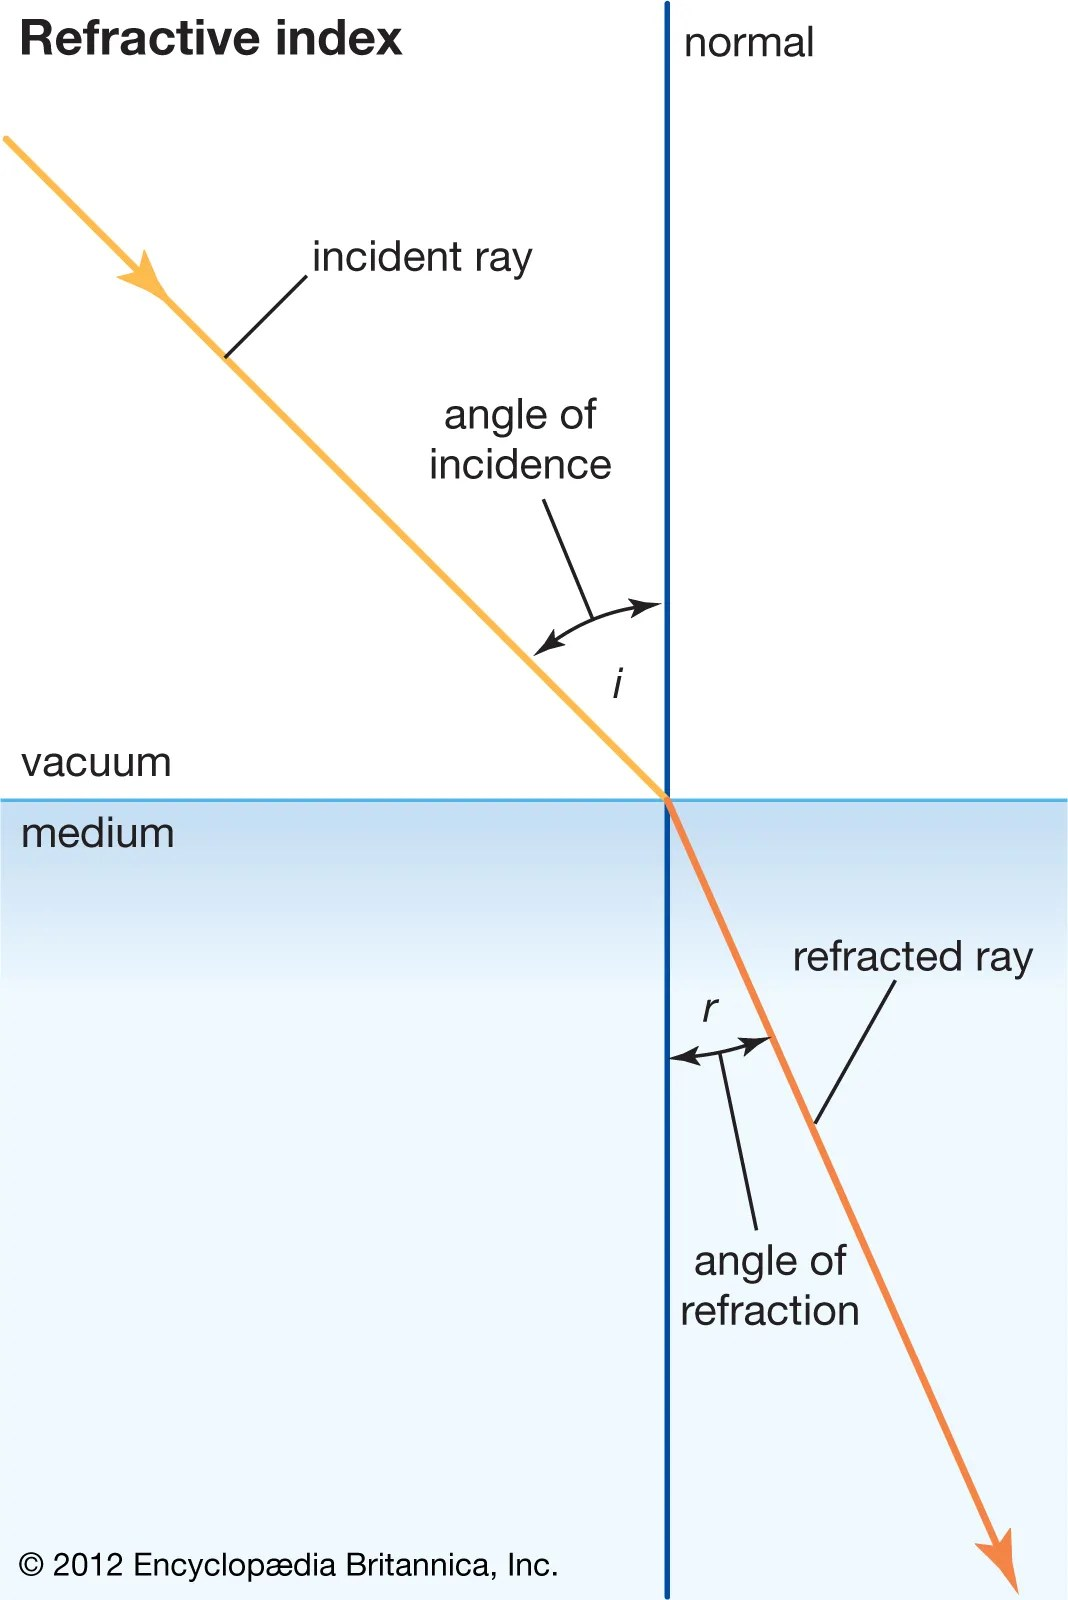 Equation Linking Refractive Index Angle Of Incidence And